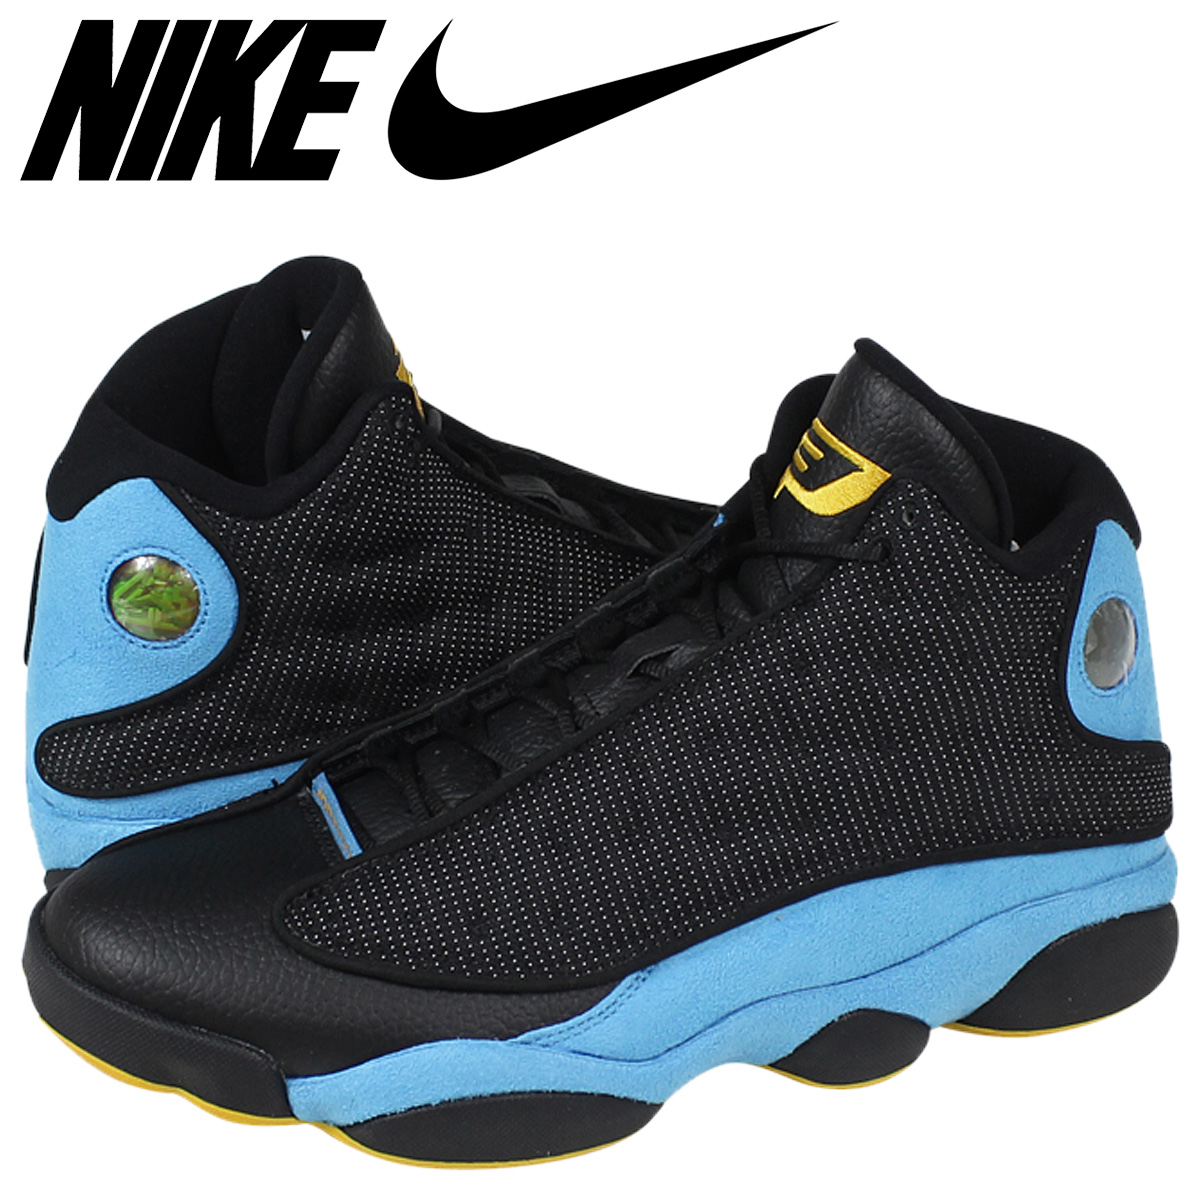 Nike Nike Air Jordan 13 Nostalgic Sneakers Air Jordan 13 Retro Cp3 Chris Pole 823 902 015 Black Men